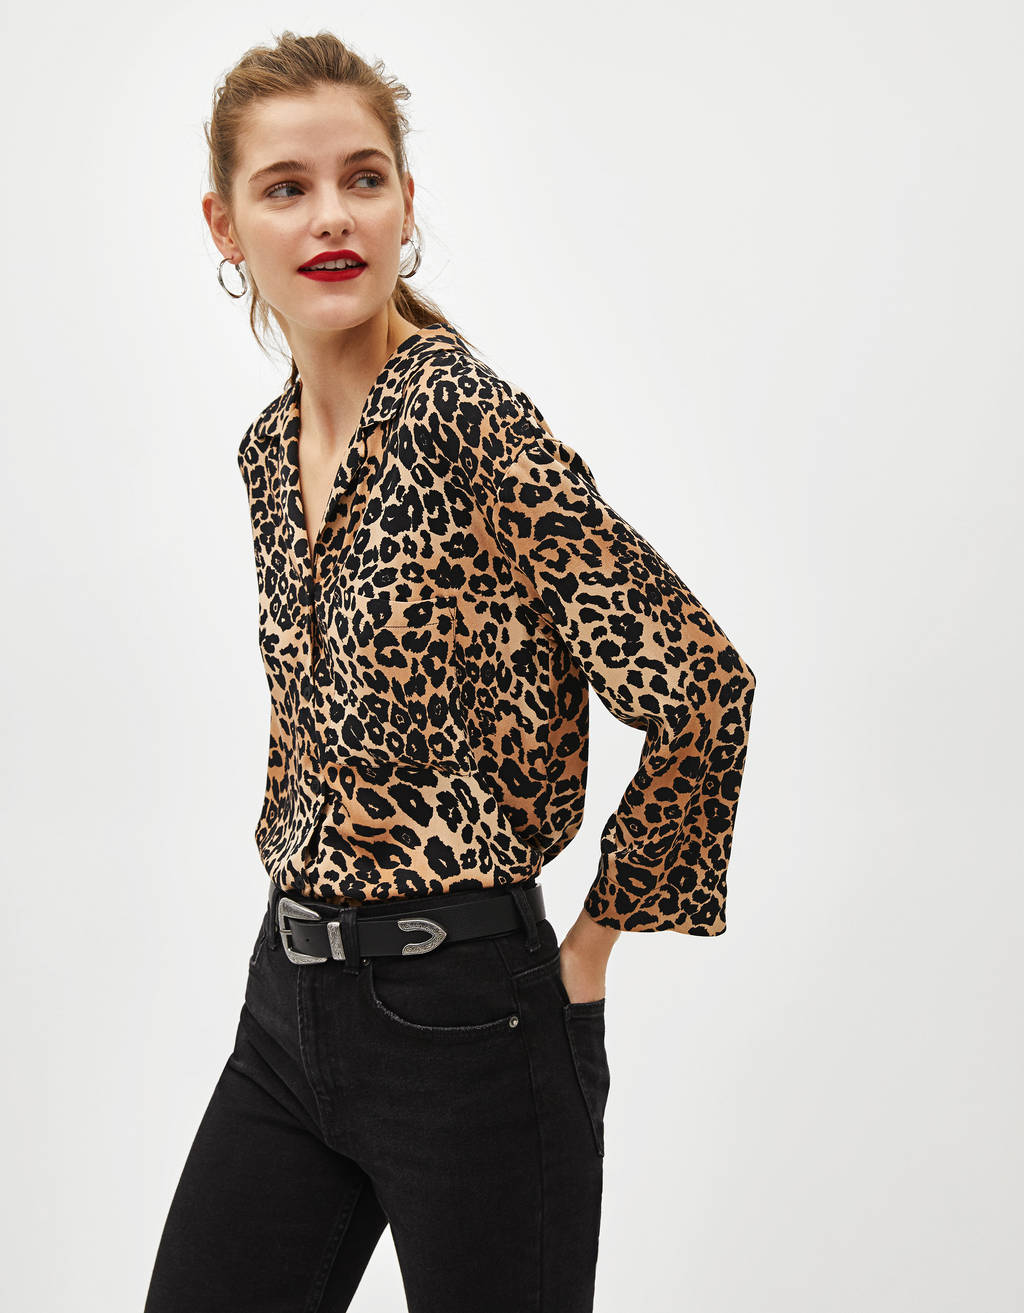 Camisa amb estampat animal print